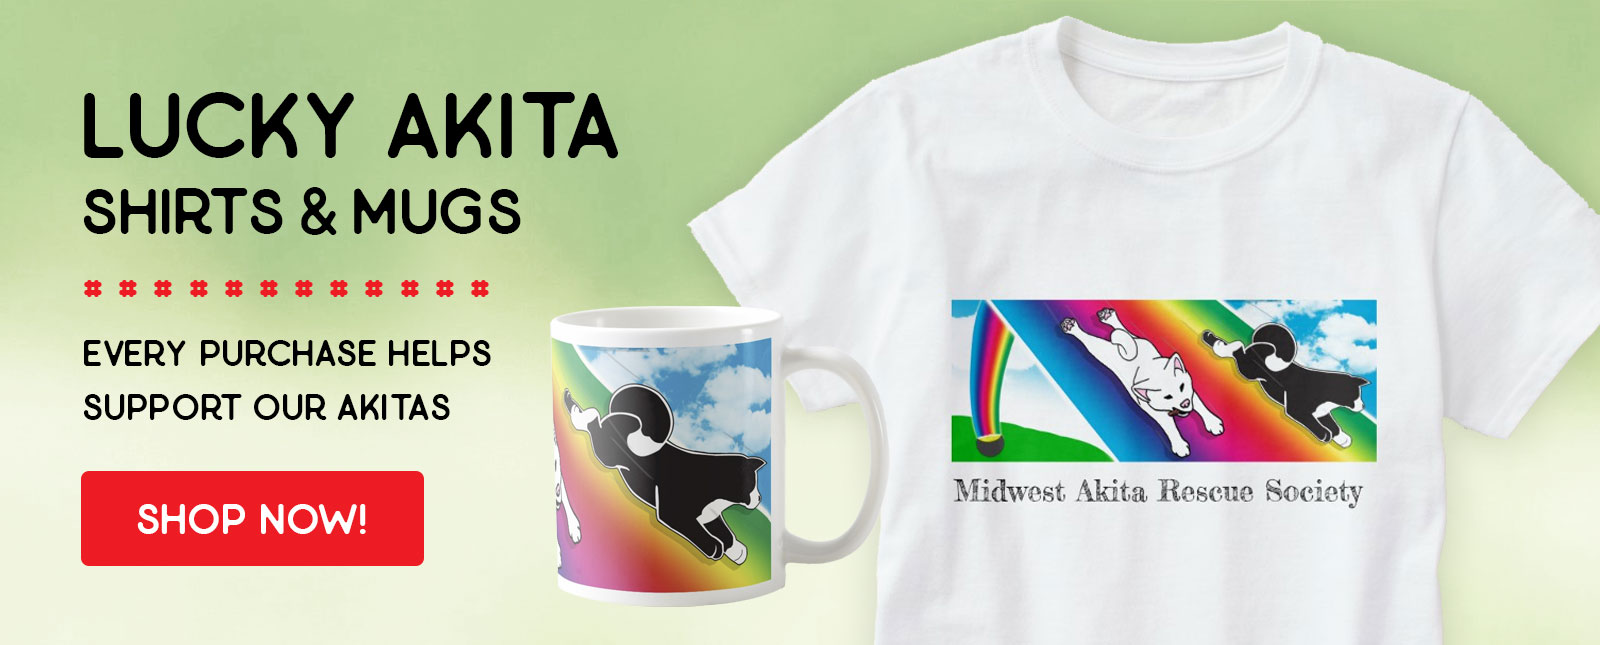 Lucky Akita t-shirts and mugs